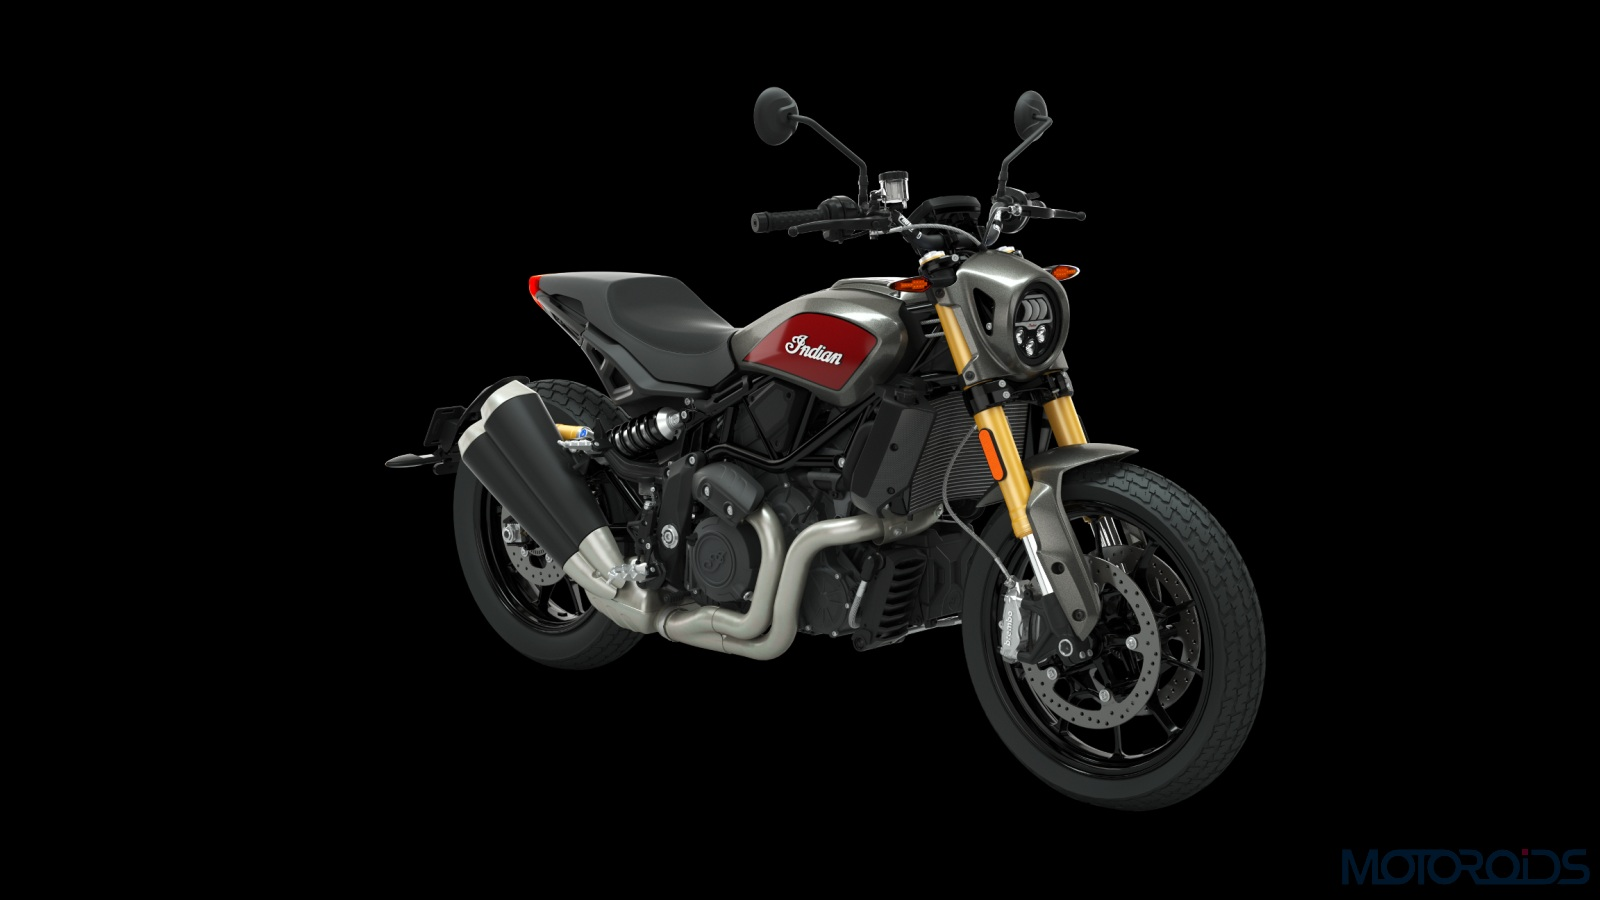 Indian Ftr 1200 S And Ftr 1200 S Race Replica Launched In